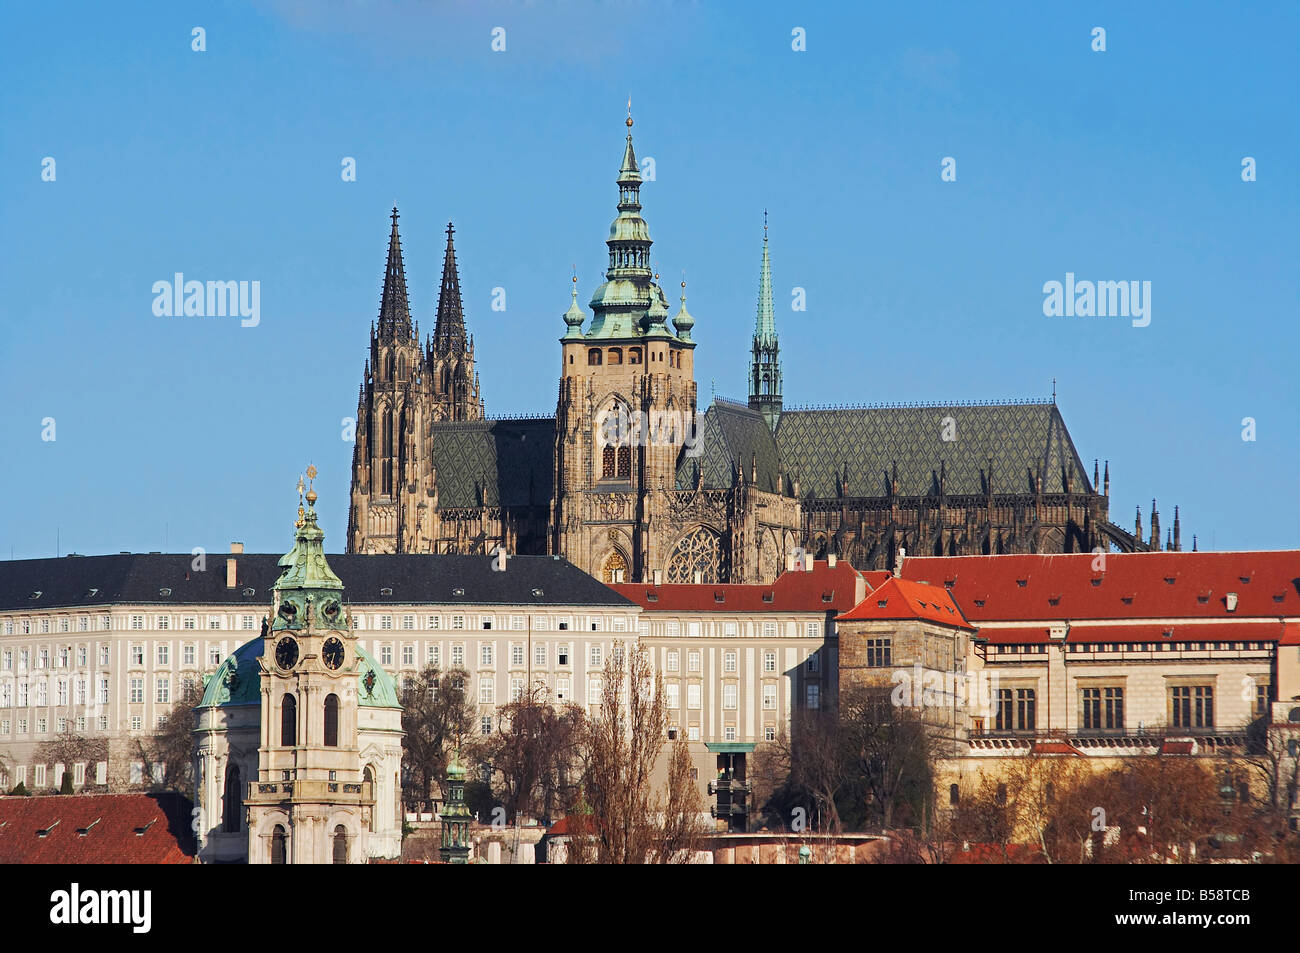 Hradcany - Cathedral of St Vitus in the Prague castle the coronation cathedral of the Bohemian sovereigns - Stock Image